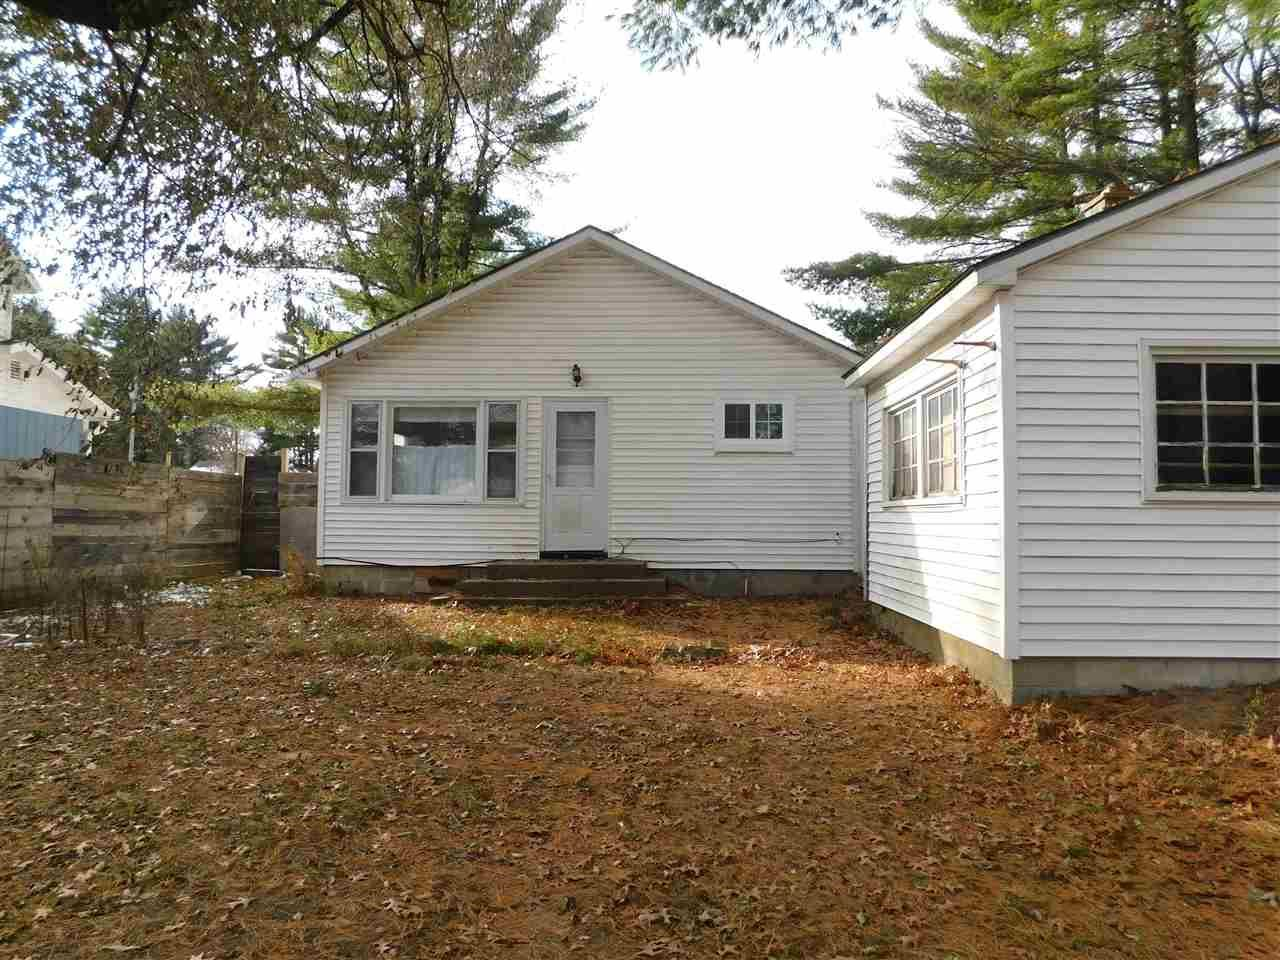 502 Quincy St, Friendship, WI 53934 - #: 1873121